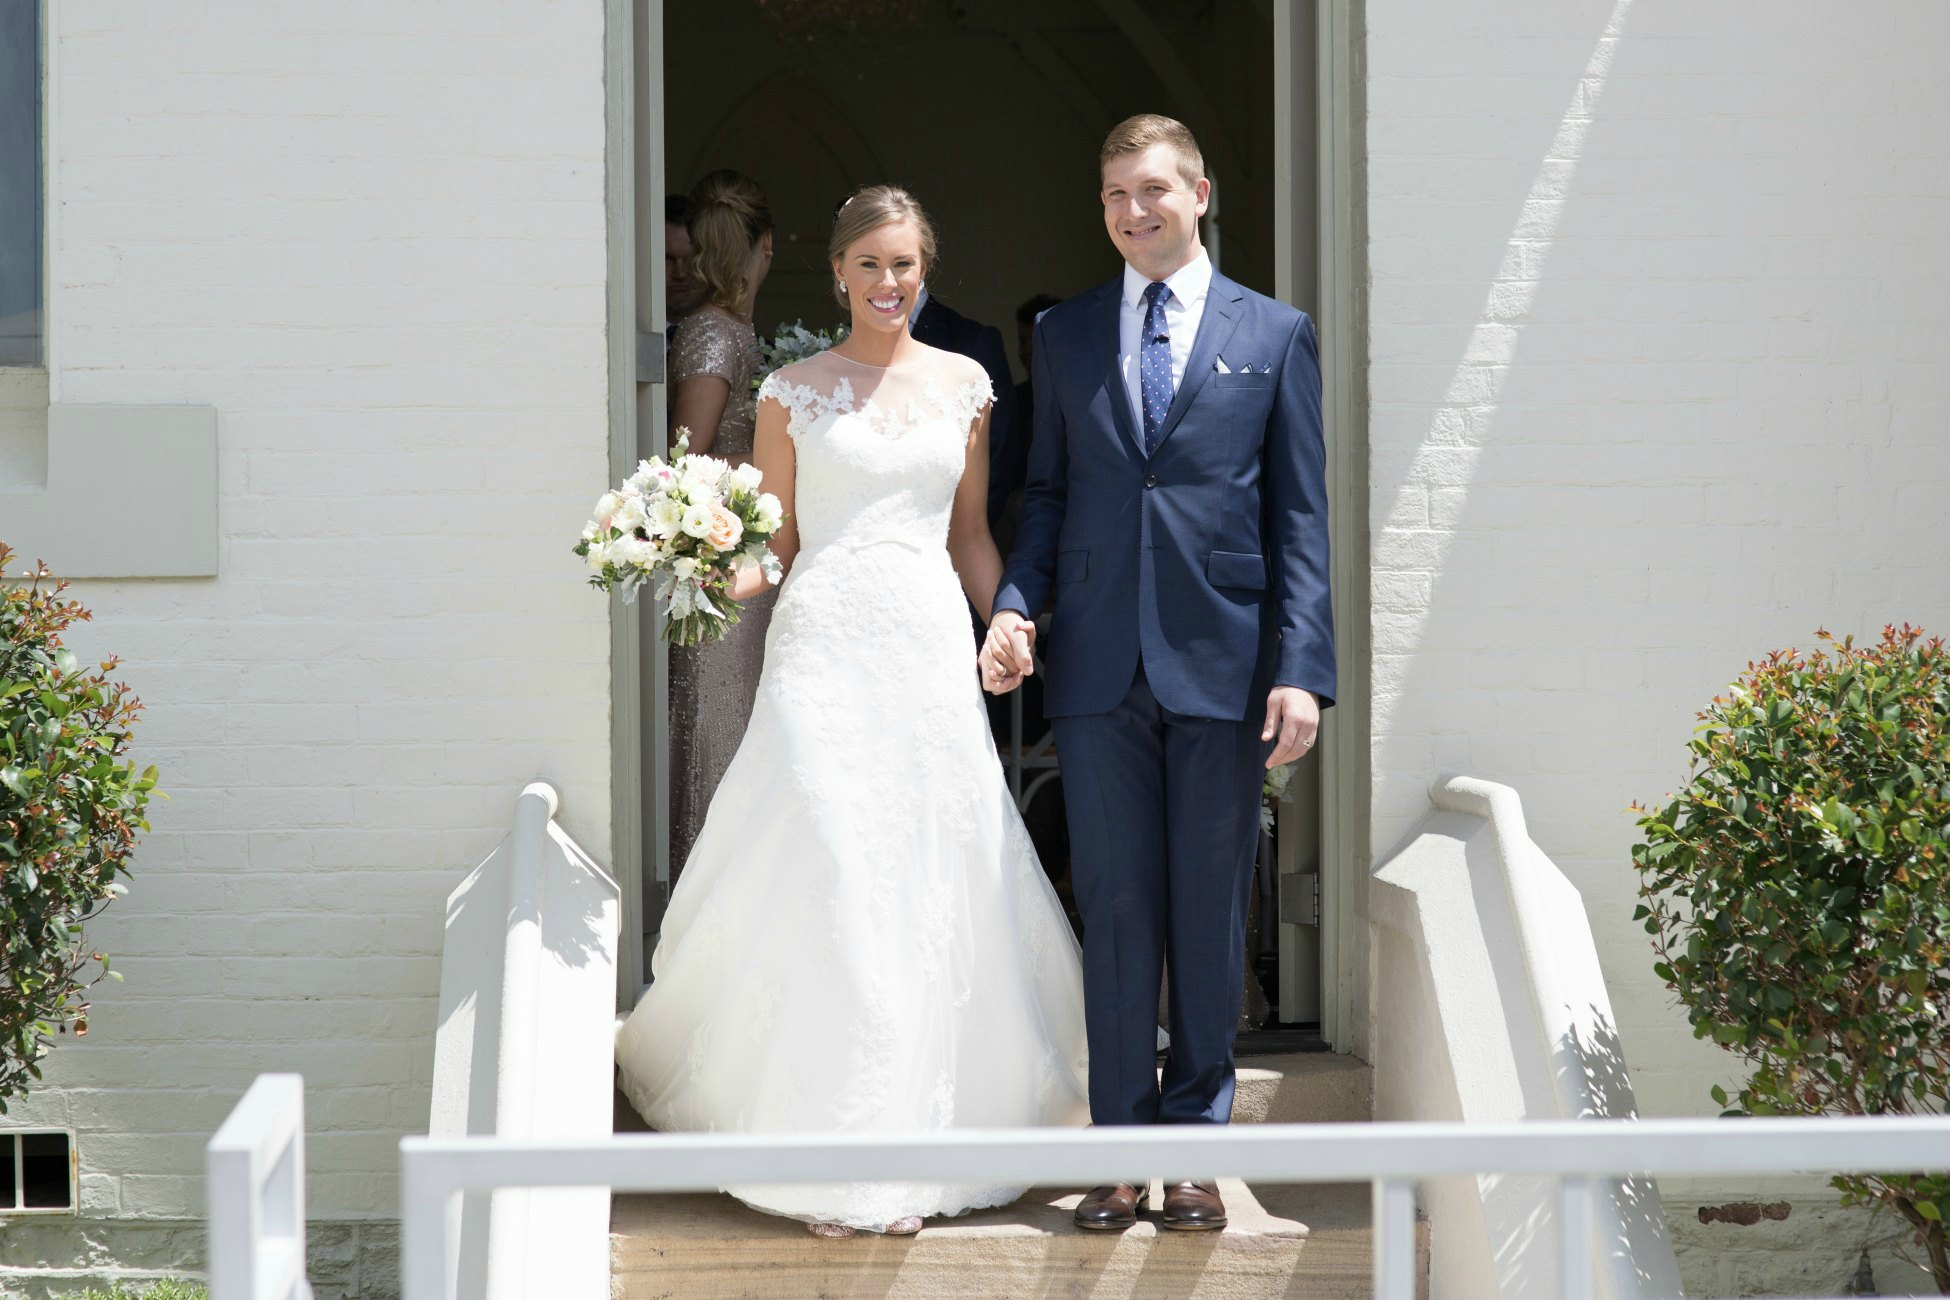 high-church-brisbane-wedding-day-bride-and-groom-photo-pronovias-dress-pretty-white-wedding-church